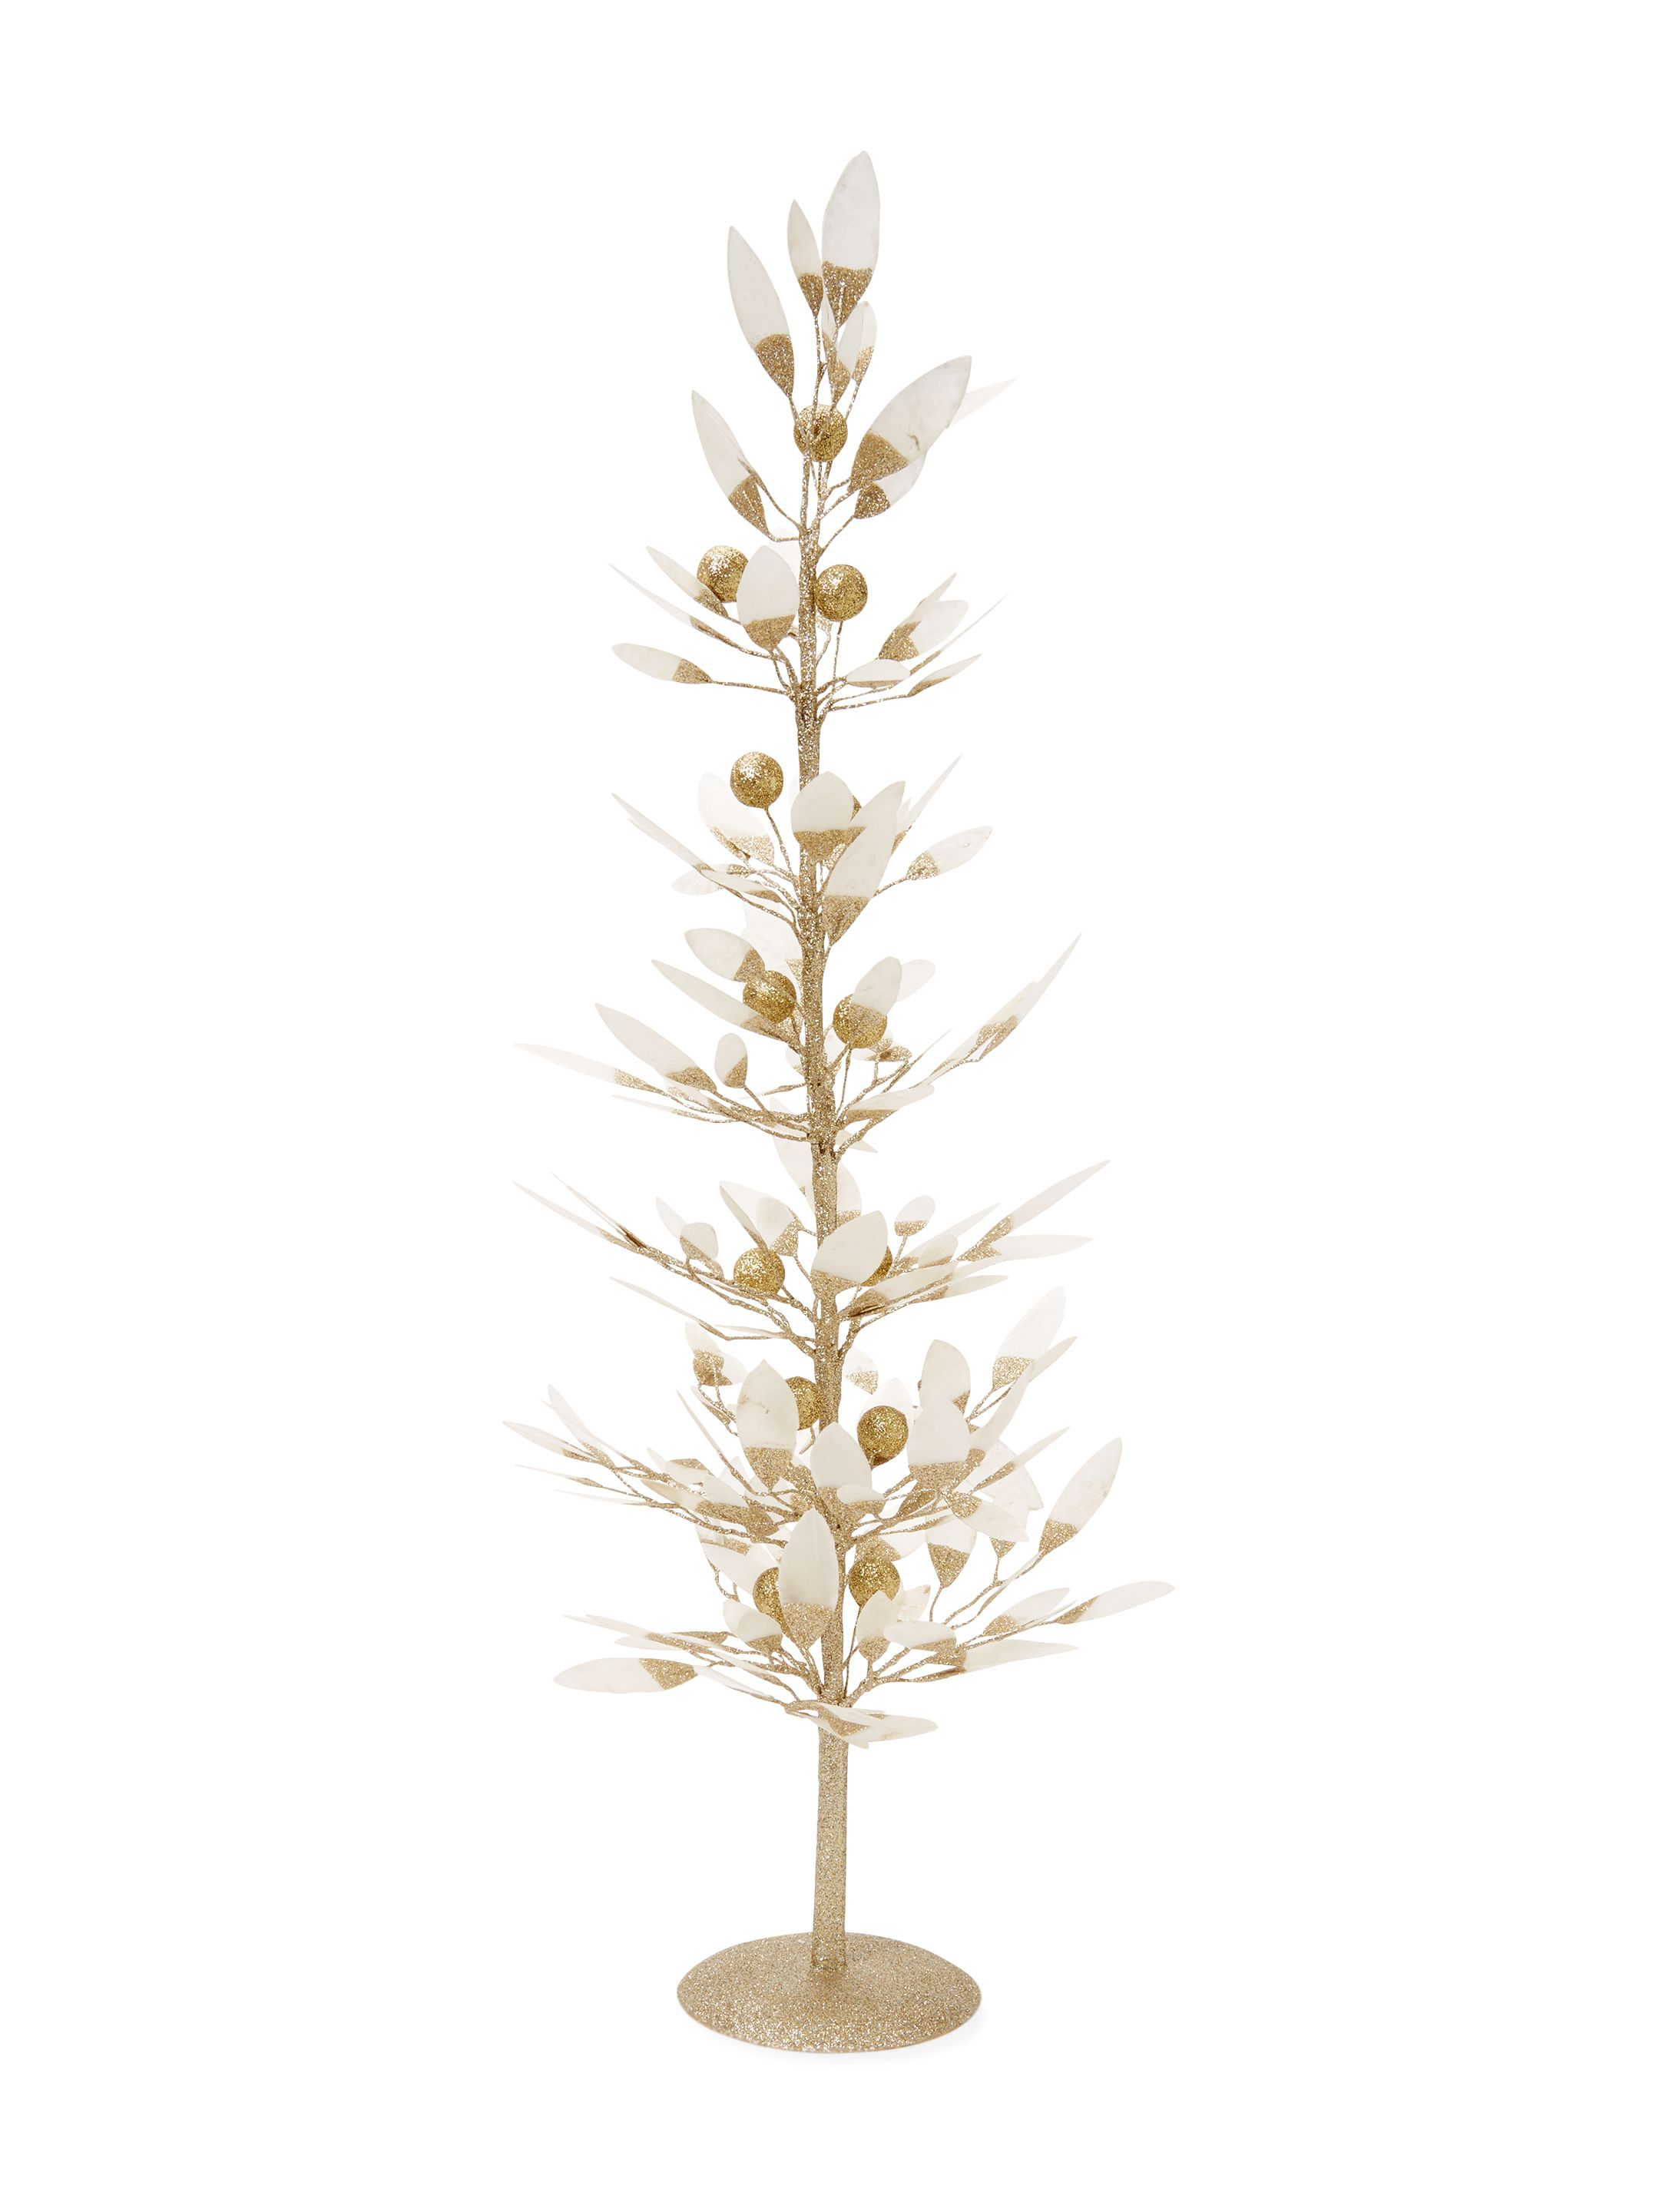 27 Modern Christmas Trees For Holiday Decorations - Contemporary Holiday Trees